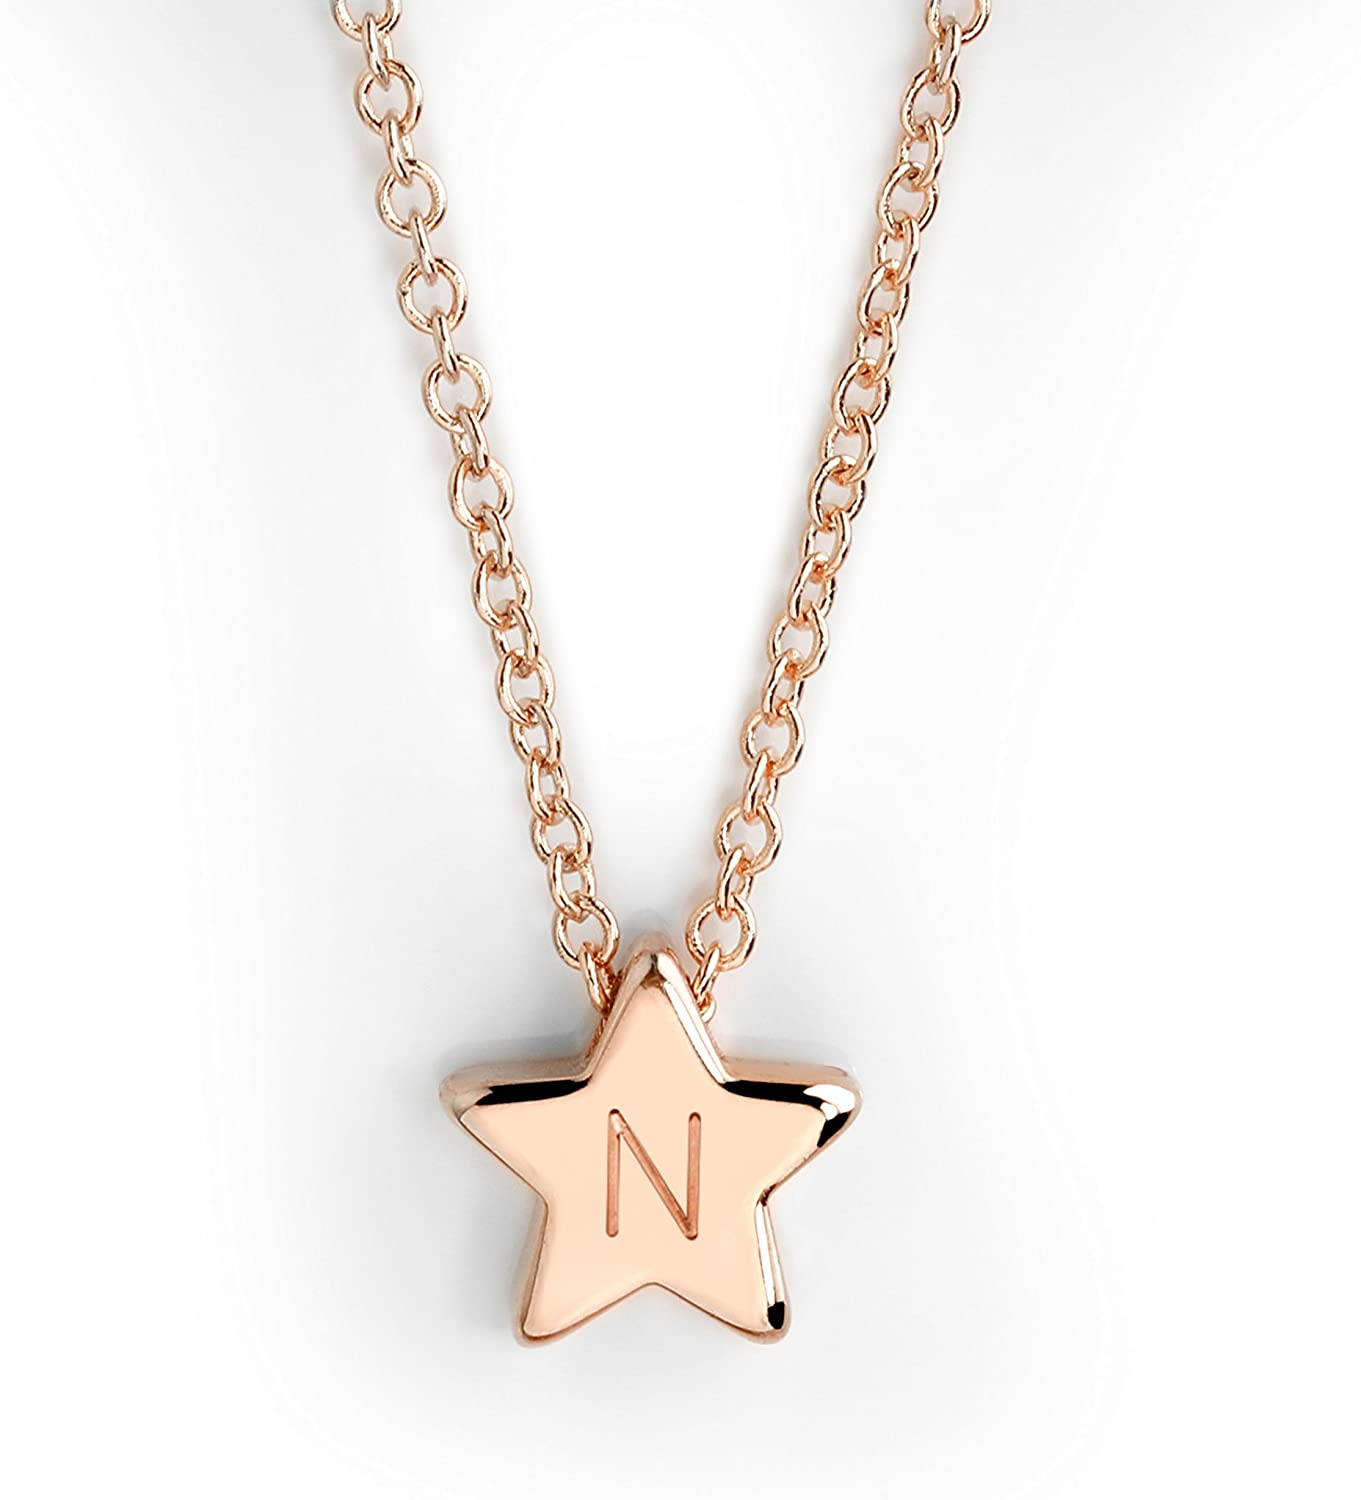 MignonandMignon Rosegold Star Necklace Personalized Teen Personalized Celestial Necklace FSN